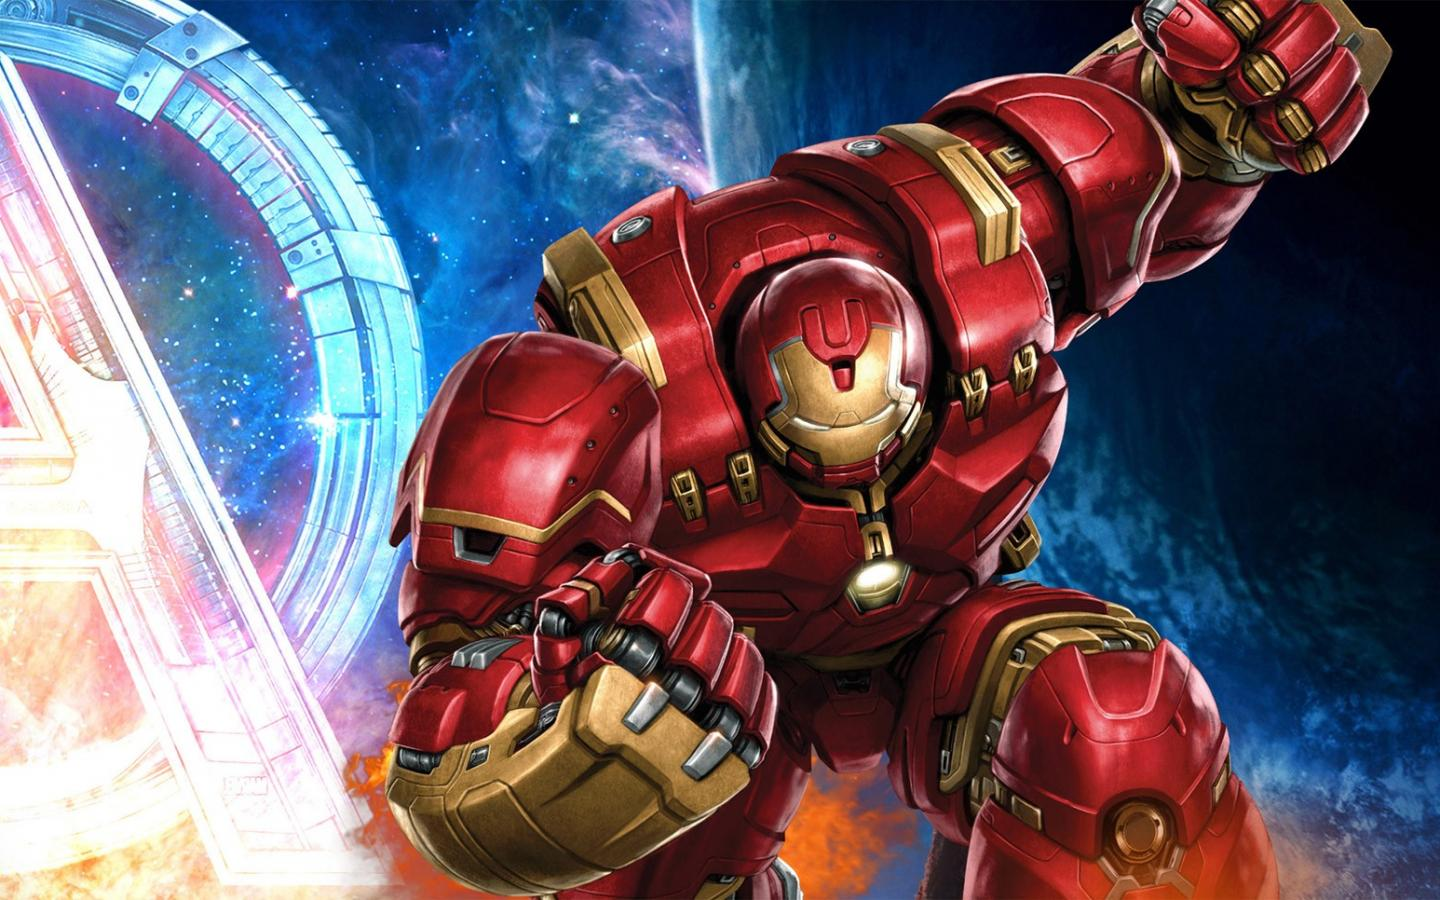 Marvel Superheroes 3d Wallpapers Iron Man Hulkbuster Mark Xliv Wallpaper Hd Wallpapers